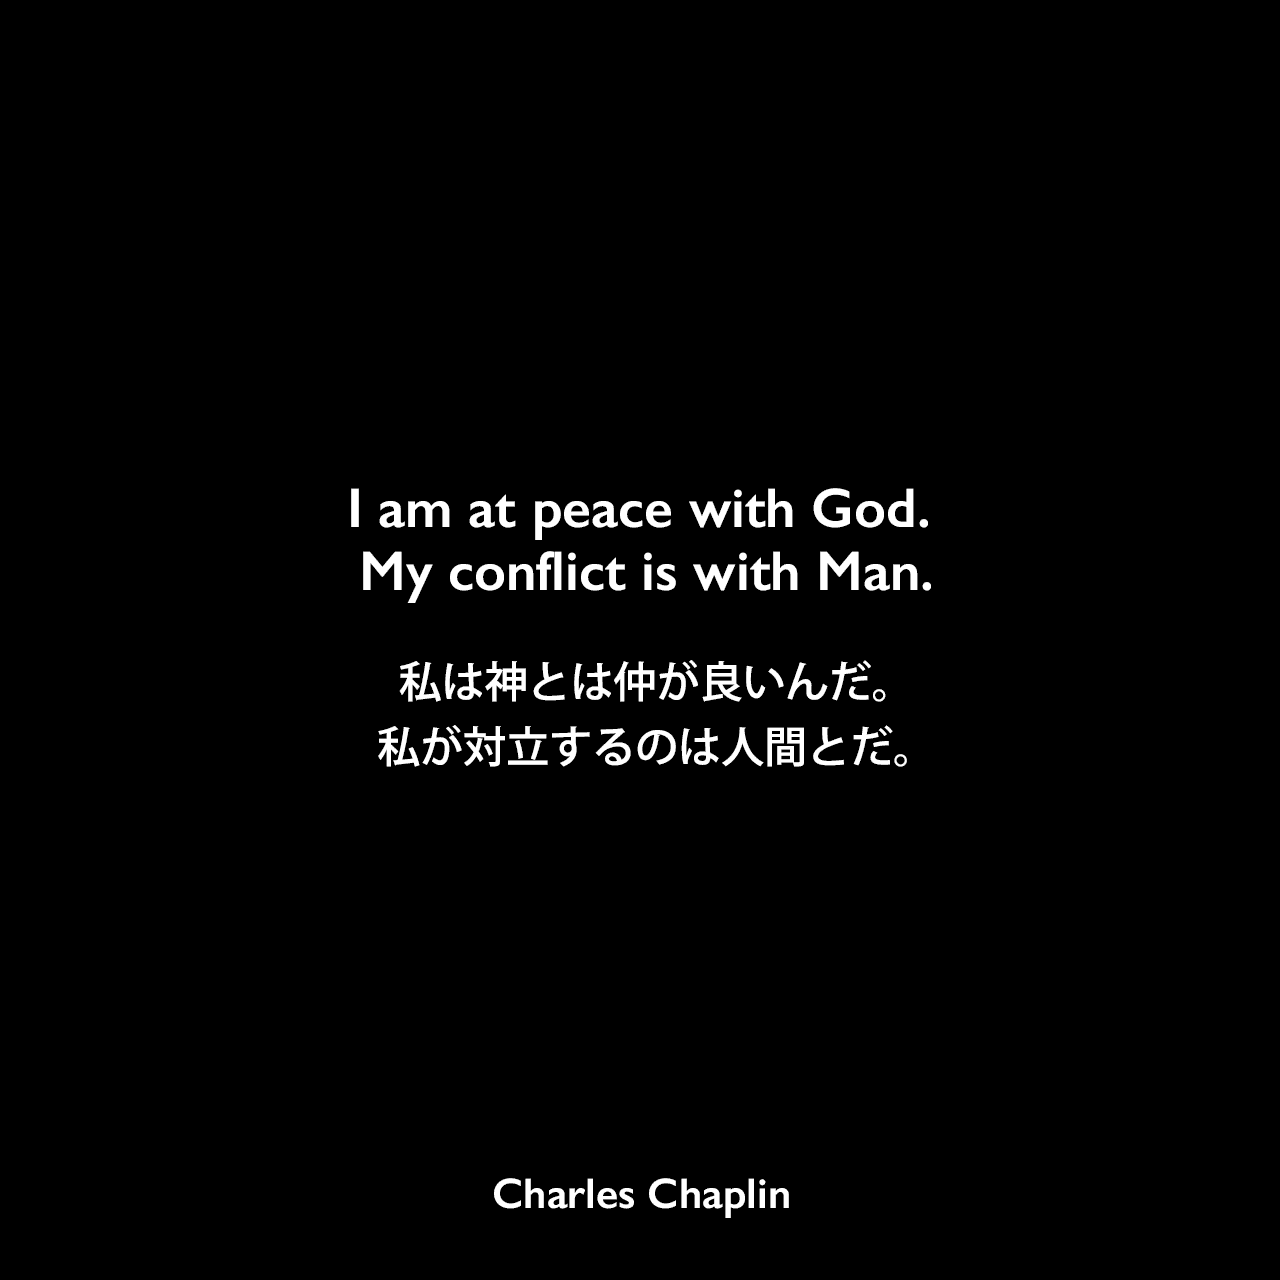 I am at peace with God. My conflict is with Man.私は神とは仲が良いんだ。私が対立するのは人間とだ。- 映画「殺人狂時代」のセリフよりCharles Chaplin